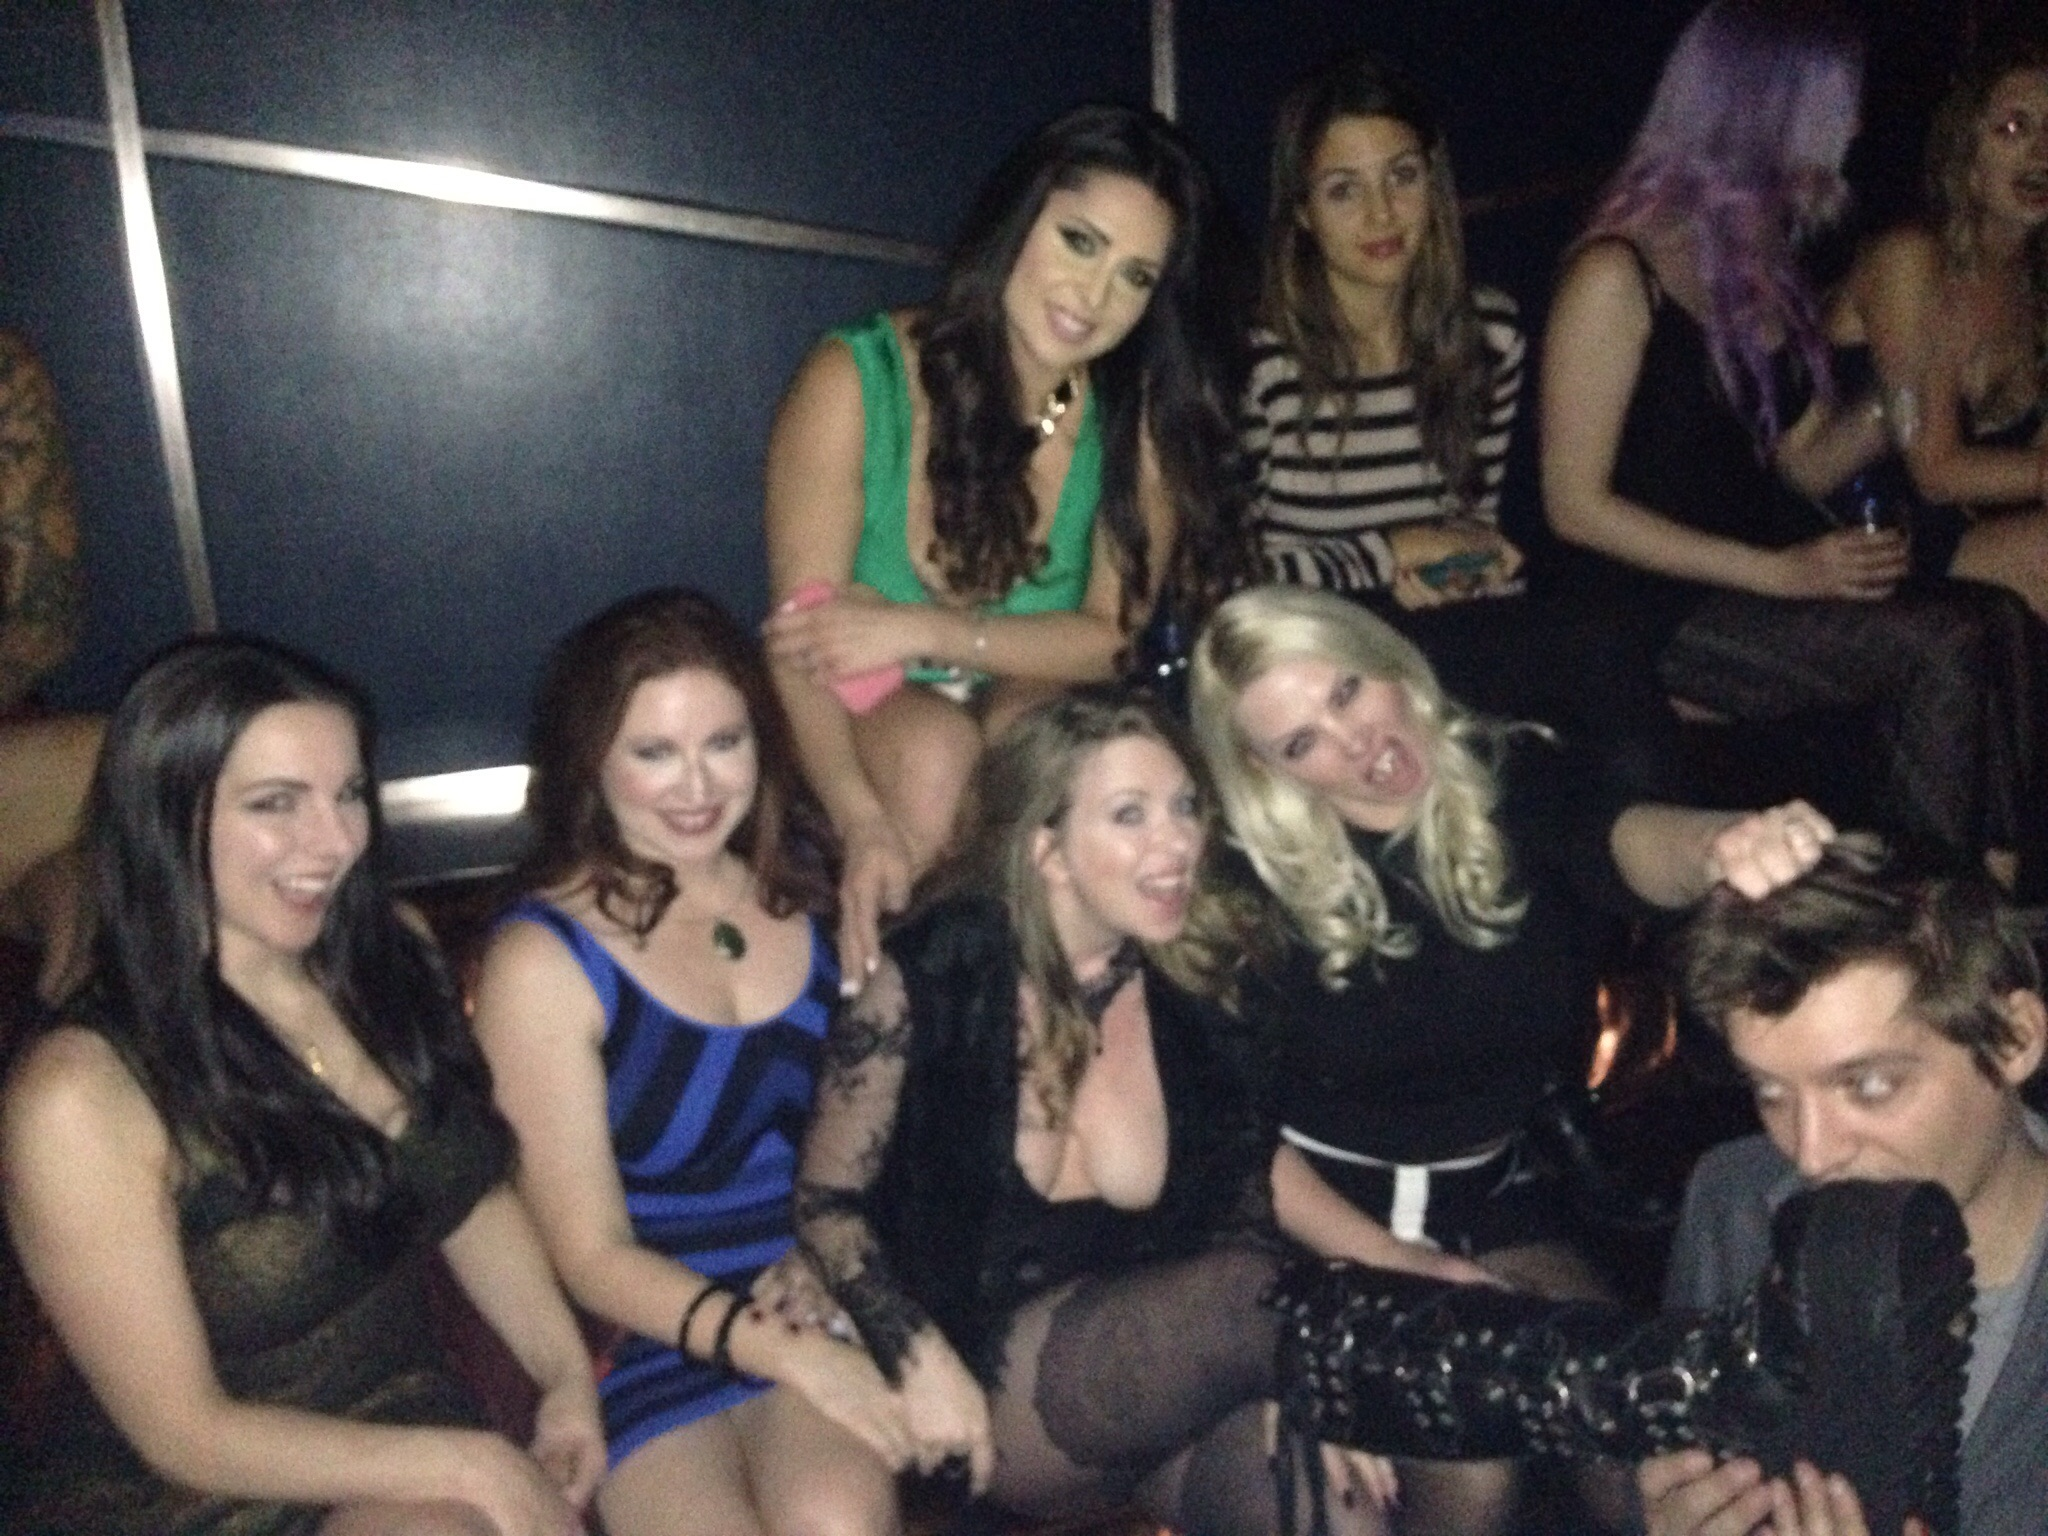 We has some crazy nights too...Alexandra Snow, Shauna Ryanne, Jasmine Mendez, Ceara Lynch, Lexi Sindel, me & Nate Bitch.